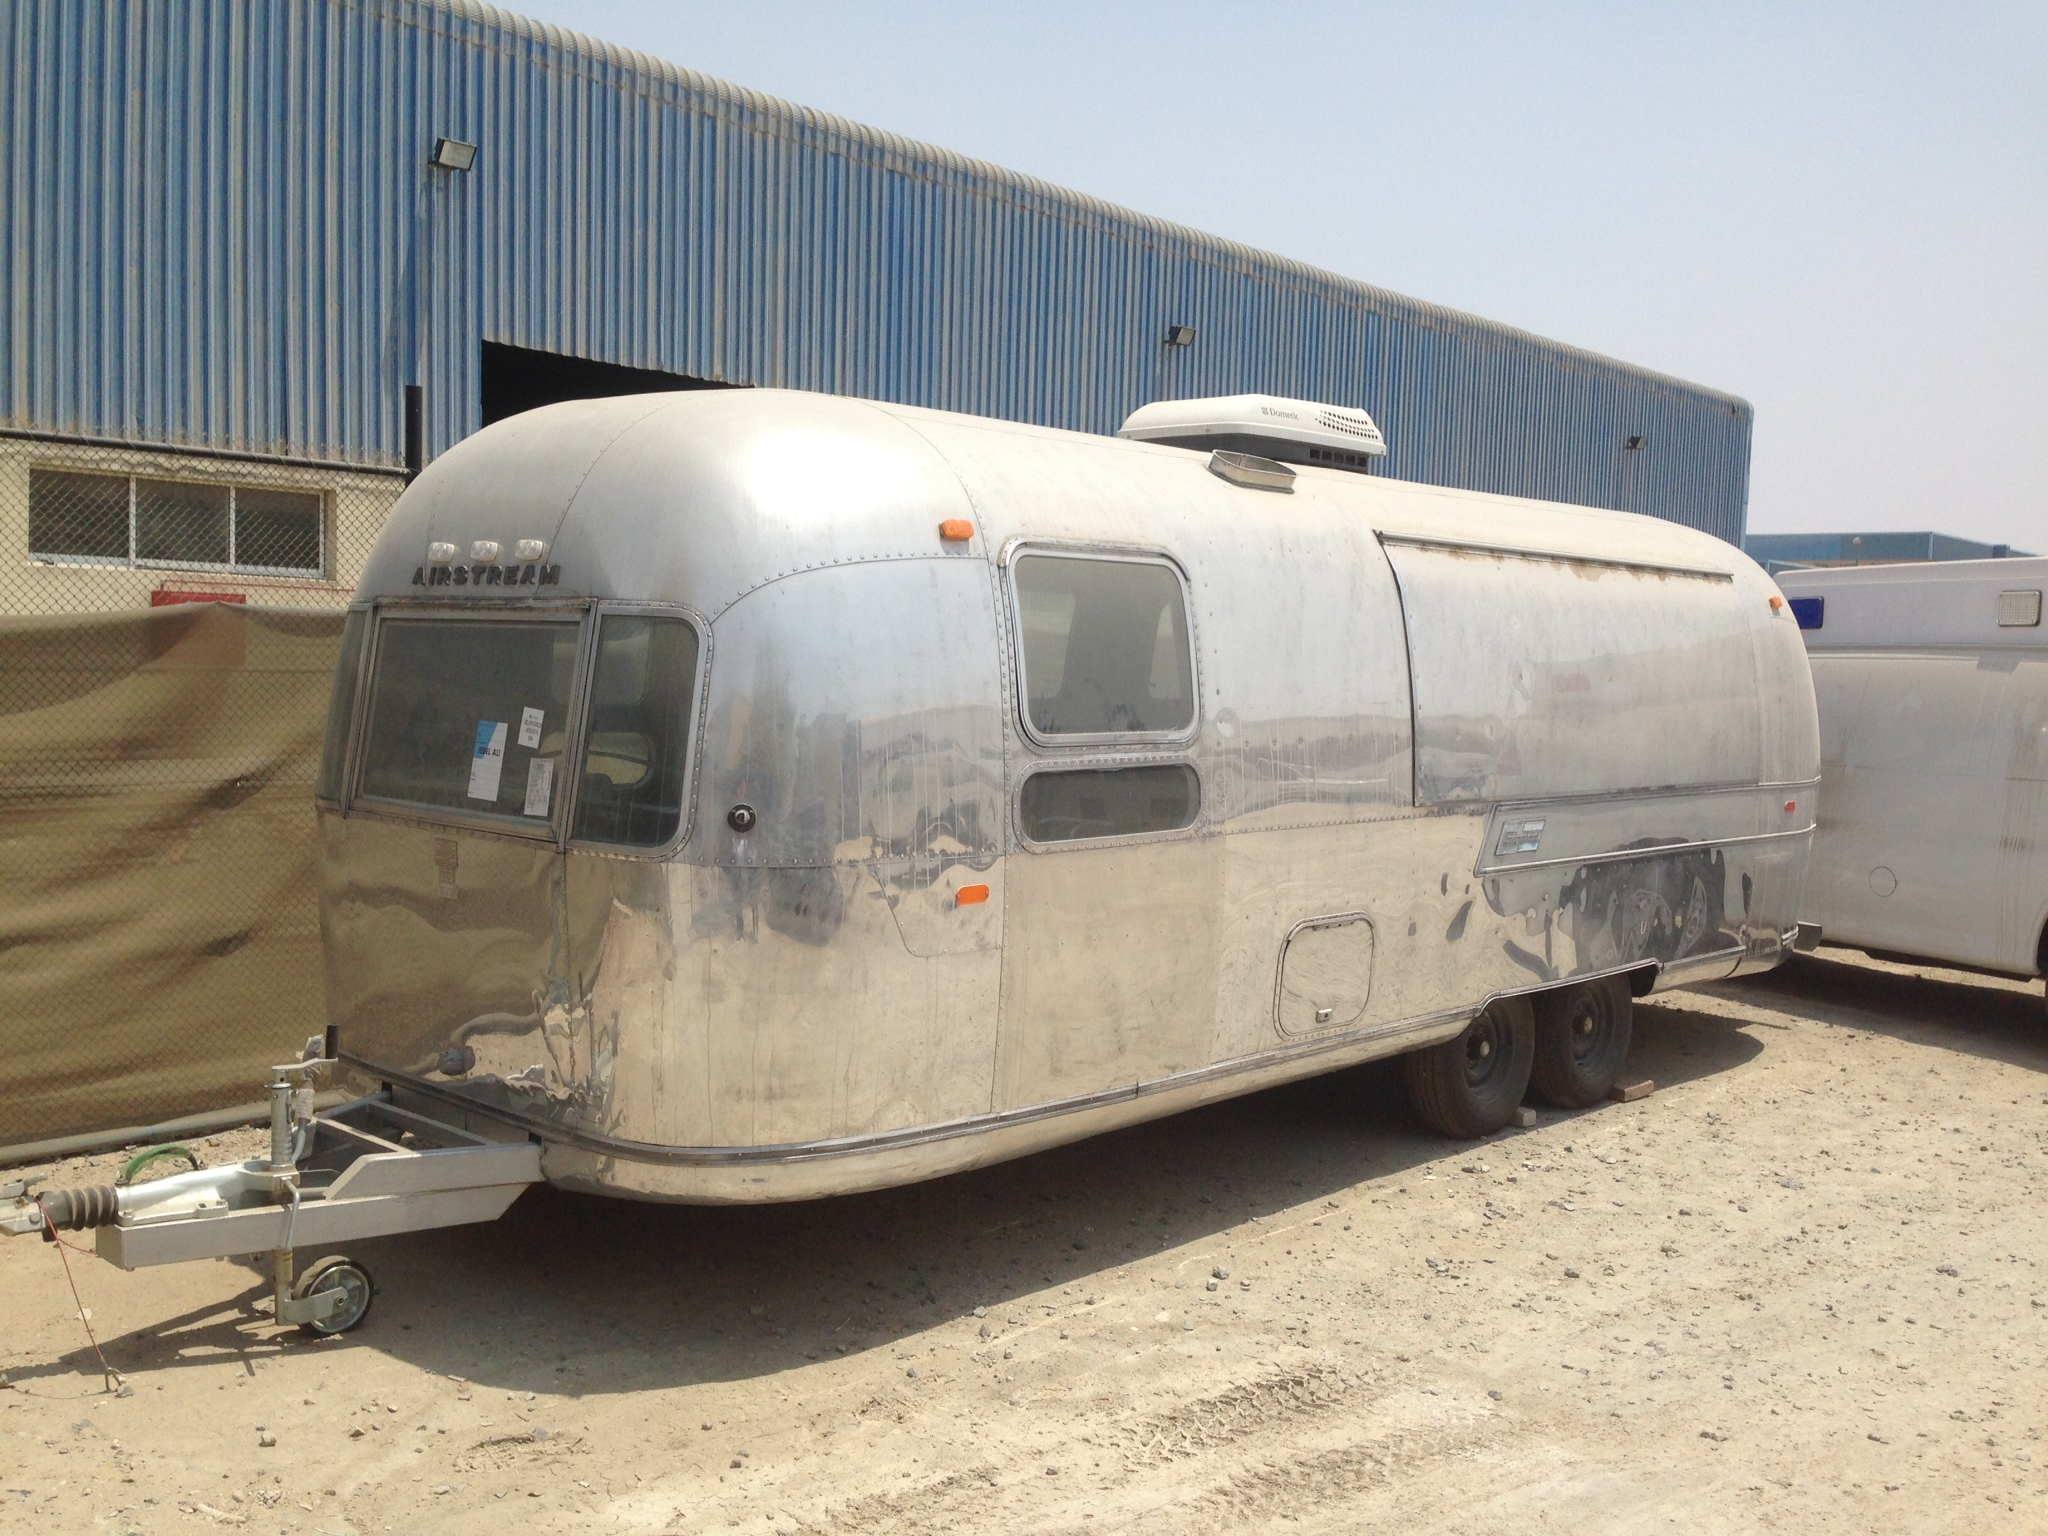 """The Airstream we'll be converting into the Panifico Food Truck! It looks worn down right now but we have big plans for this old dog.                      Normal   0           false   false   false     EN-US   JA   X-NONE                                                                                                                                                                                                                                                                                                                                                                              /* Style Definitions */ table.MsoNormalTable {mso-style-name:""""Table Normal""""; mso-tstyle-rowband-size:0; mso-tstyle-colband-size:0; mso-style-noshow:yes; mso-style-priority:99; mso-style-parent:""""""""; mso-padding-alt:0cm 5.4pt 0cm 5.4pt; mso-para-margin:0cm; mso-para-margin-bottom:.0001pt; mso-pagination:widow-orphan; font-size:12.0pt; font-family:Cambria; mso-ascii-font-family:Cambria; mso-ascii-theme-font:minor-latin; mso-hansi-font-family:Cambria; mso-hansi-theme-font:minor-latin;}"""